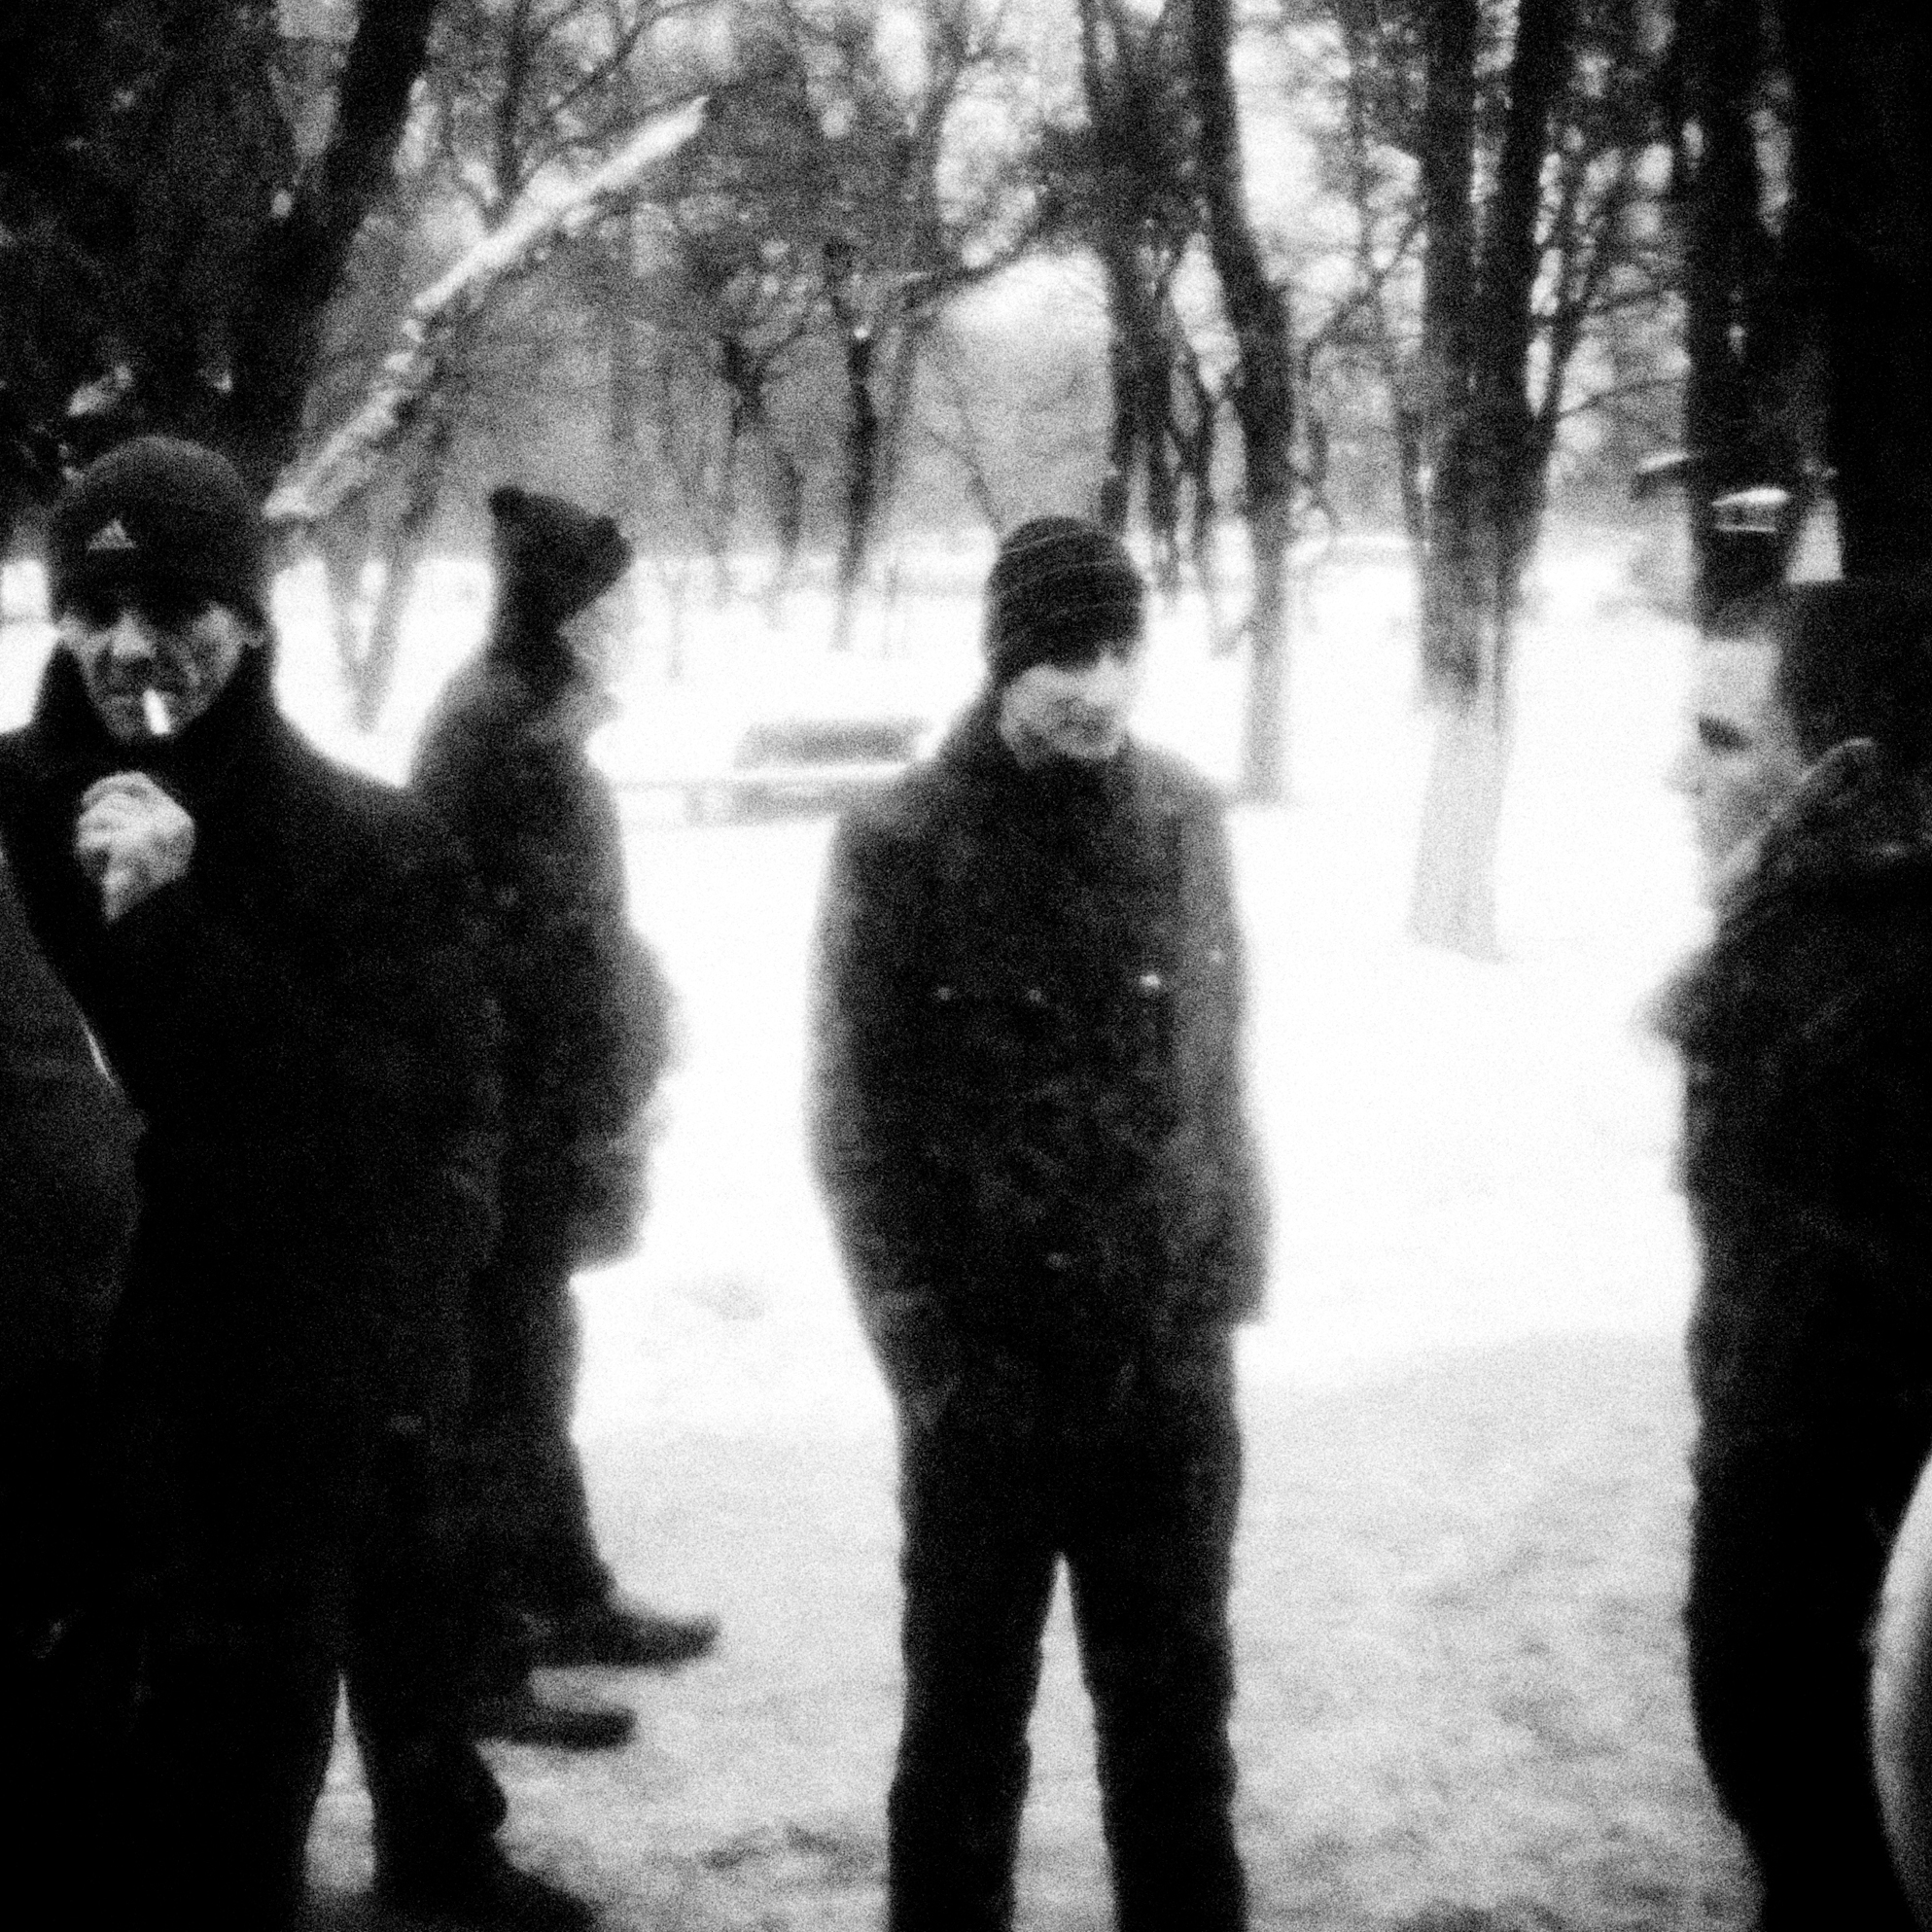 A group of tuberculosis patients with various degrees of drug resistance have a smoke just outside a tuberculosis clinic in Donetsk, Ukraine.